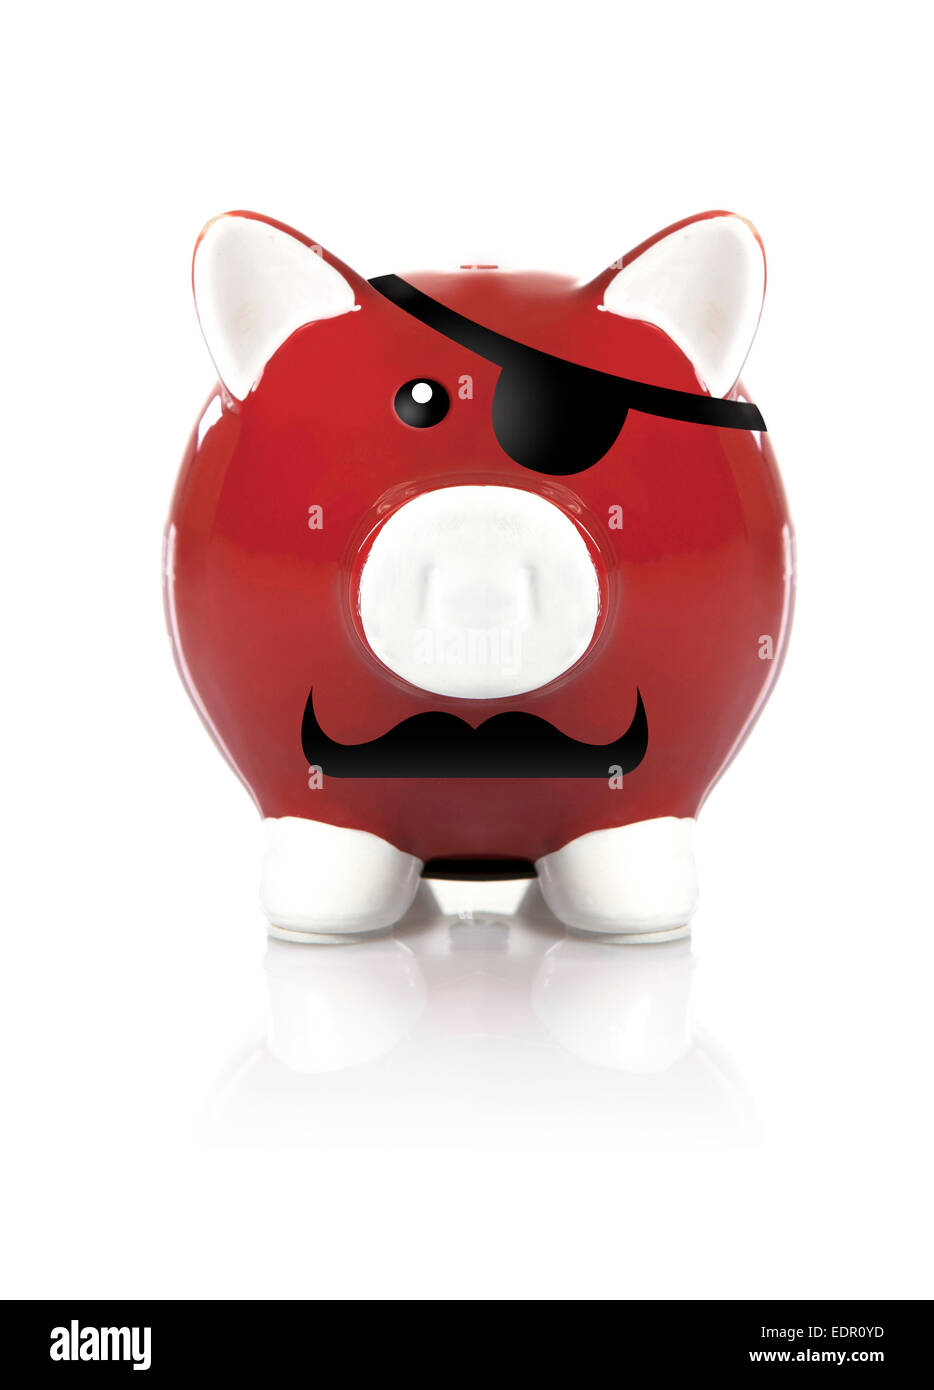 Pirate piggy bank with eye patch looking at camera on white background - Stock Image